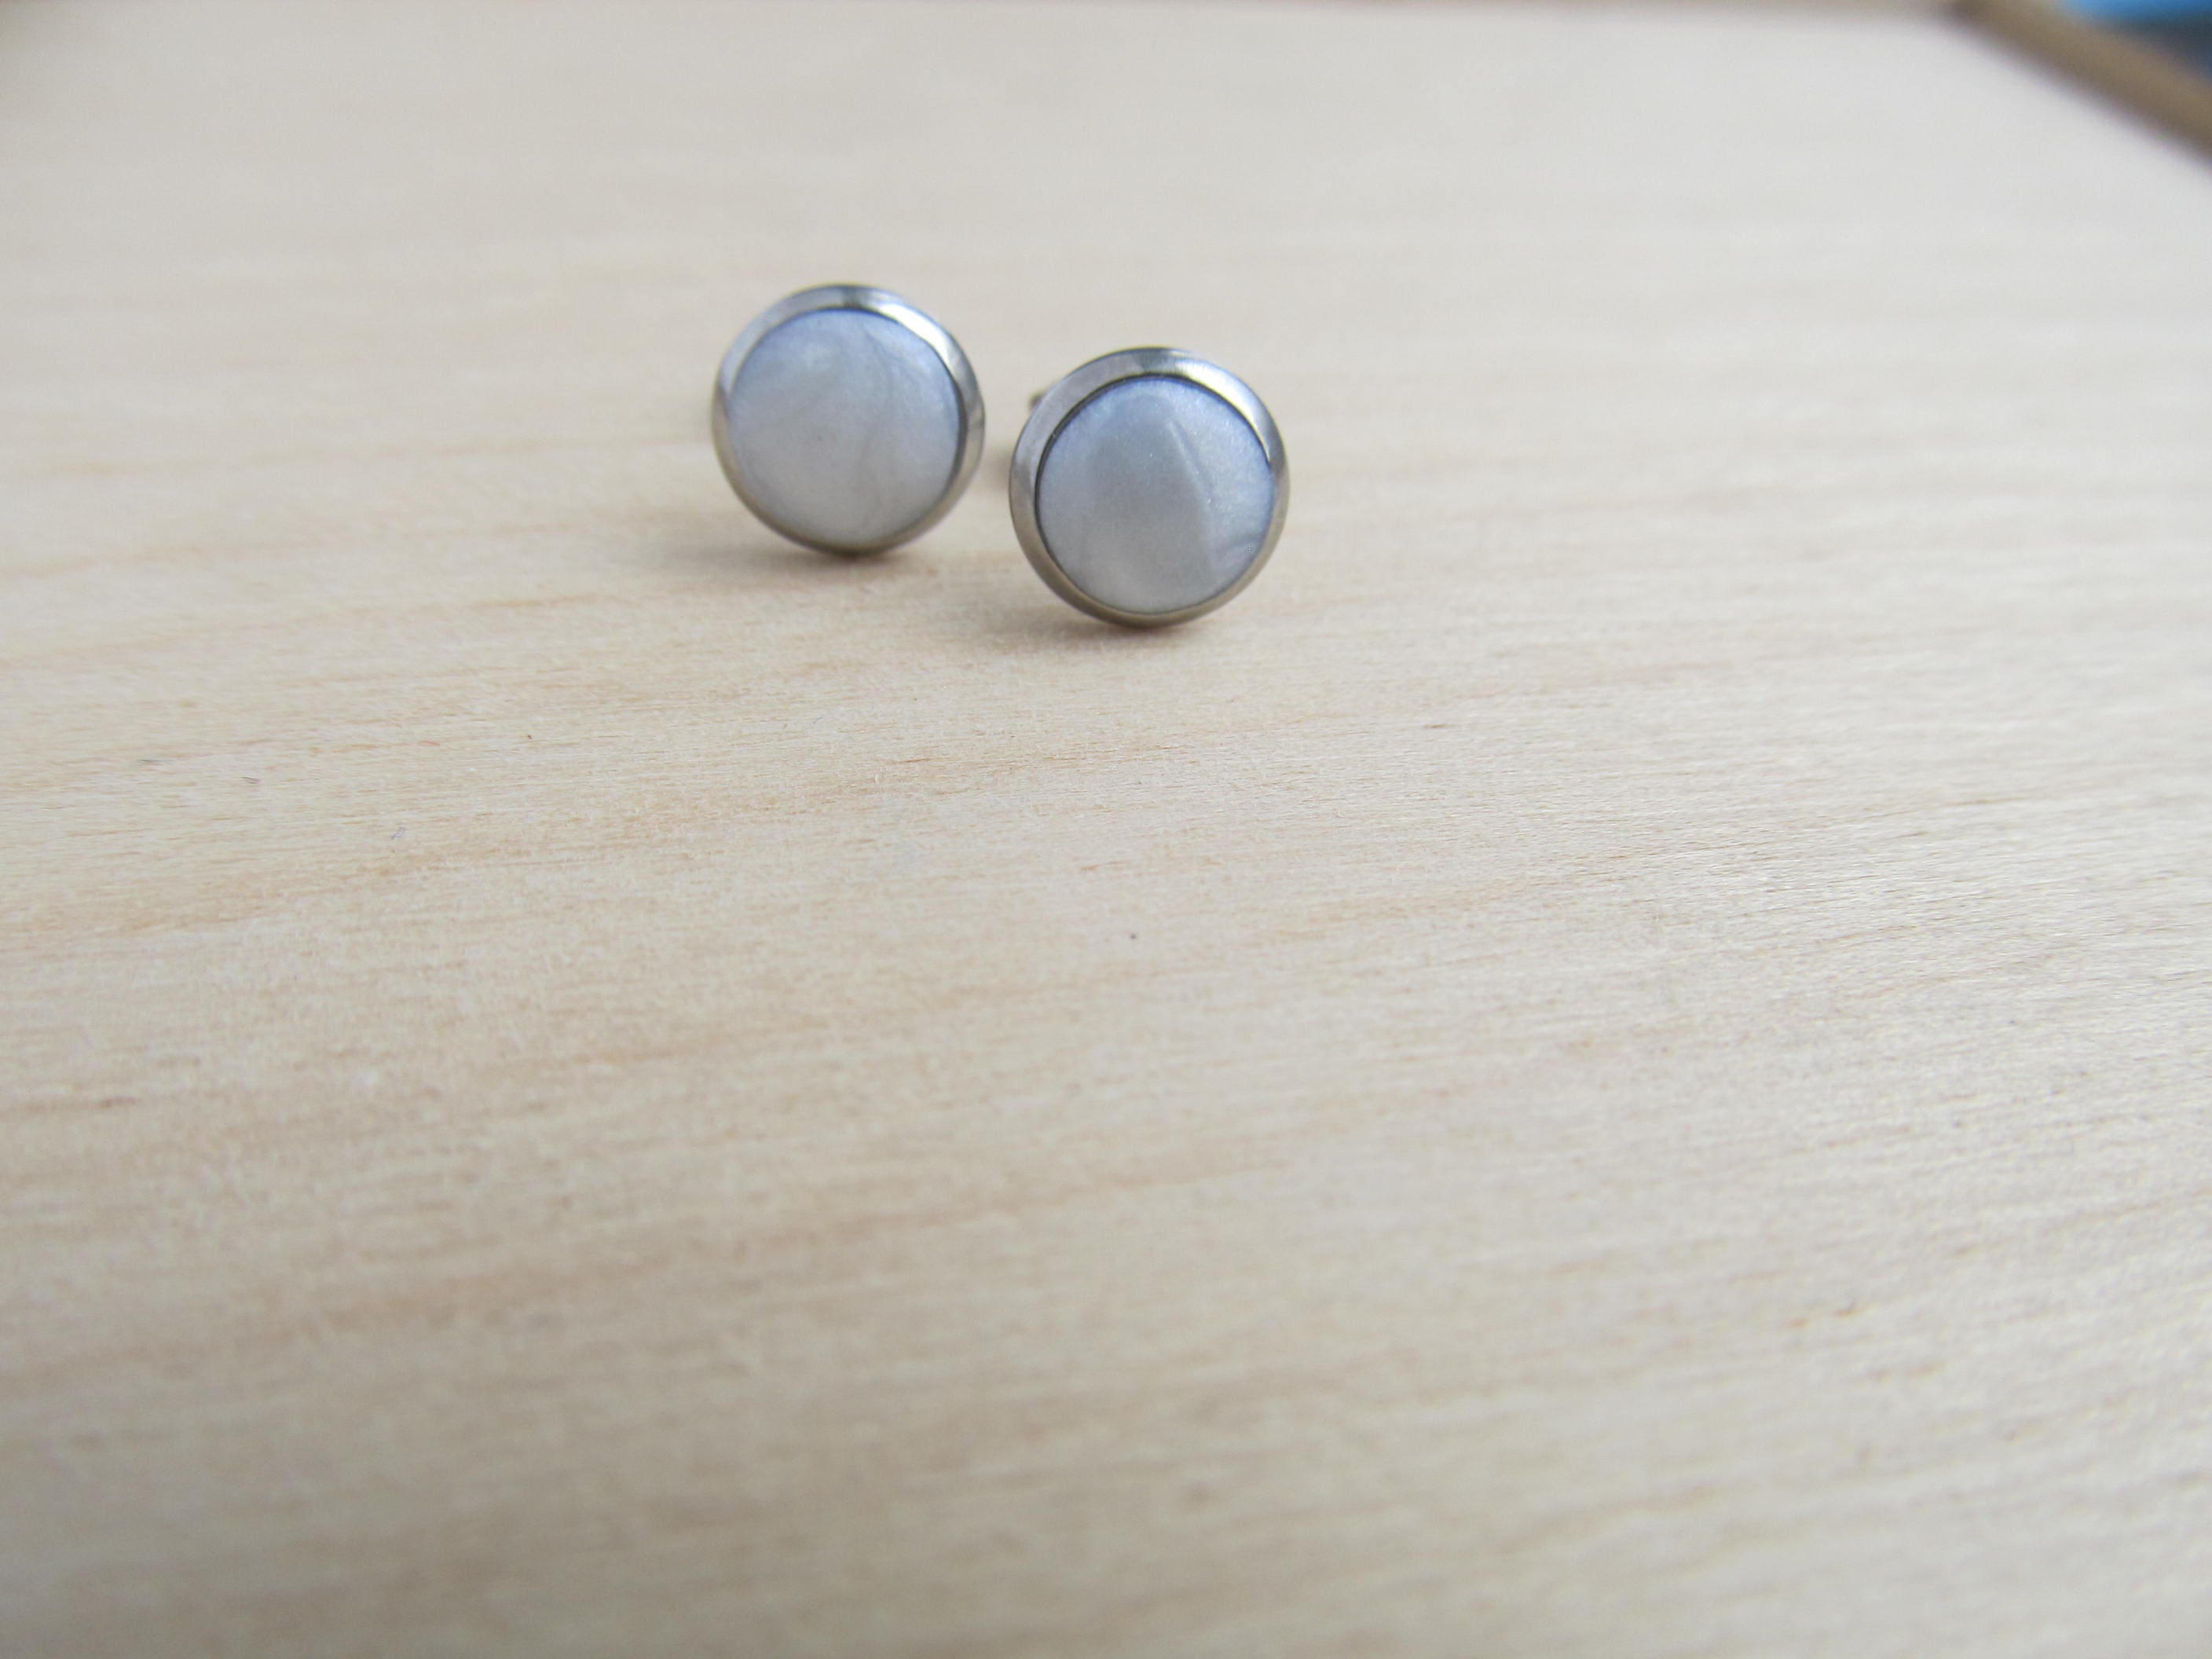 surgical studs steel stud women earrings bone brand high trendy men in ball item fhjewe from polished buttons pirecing jewelry ear